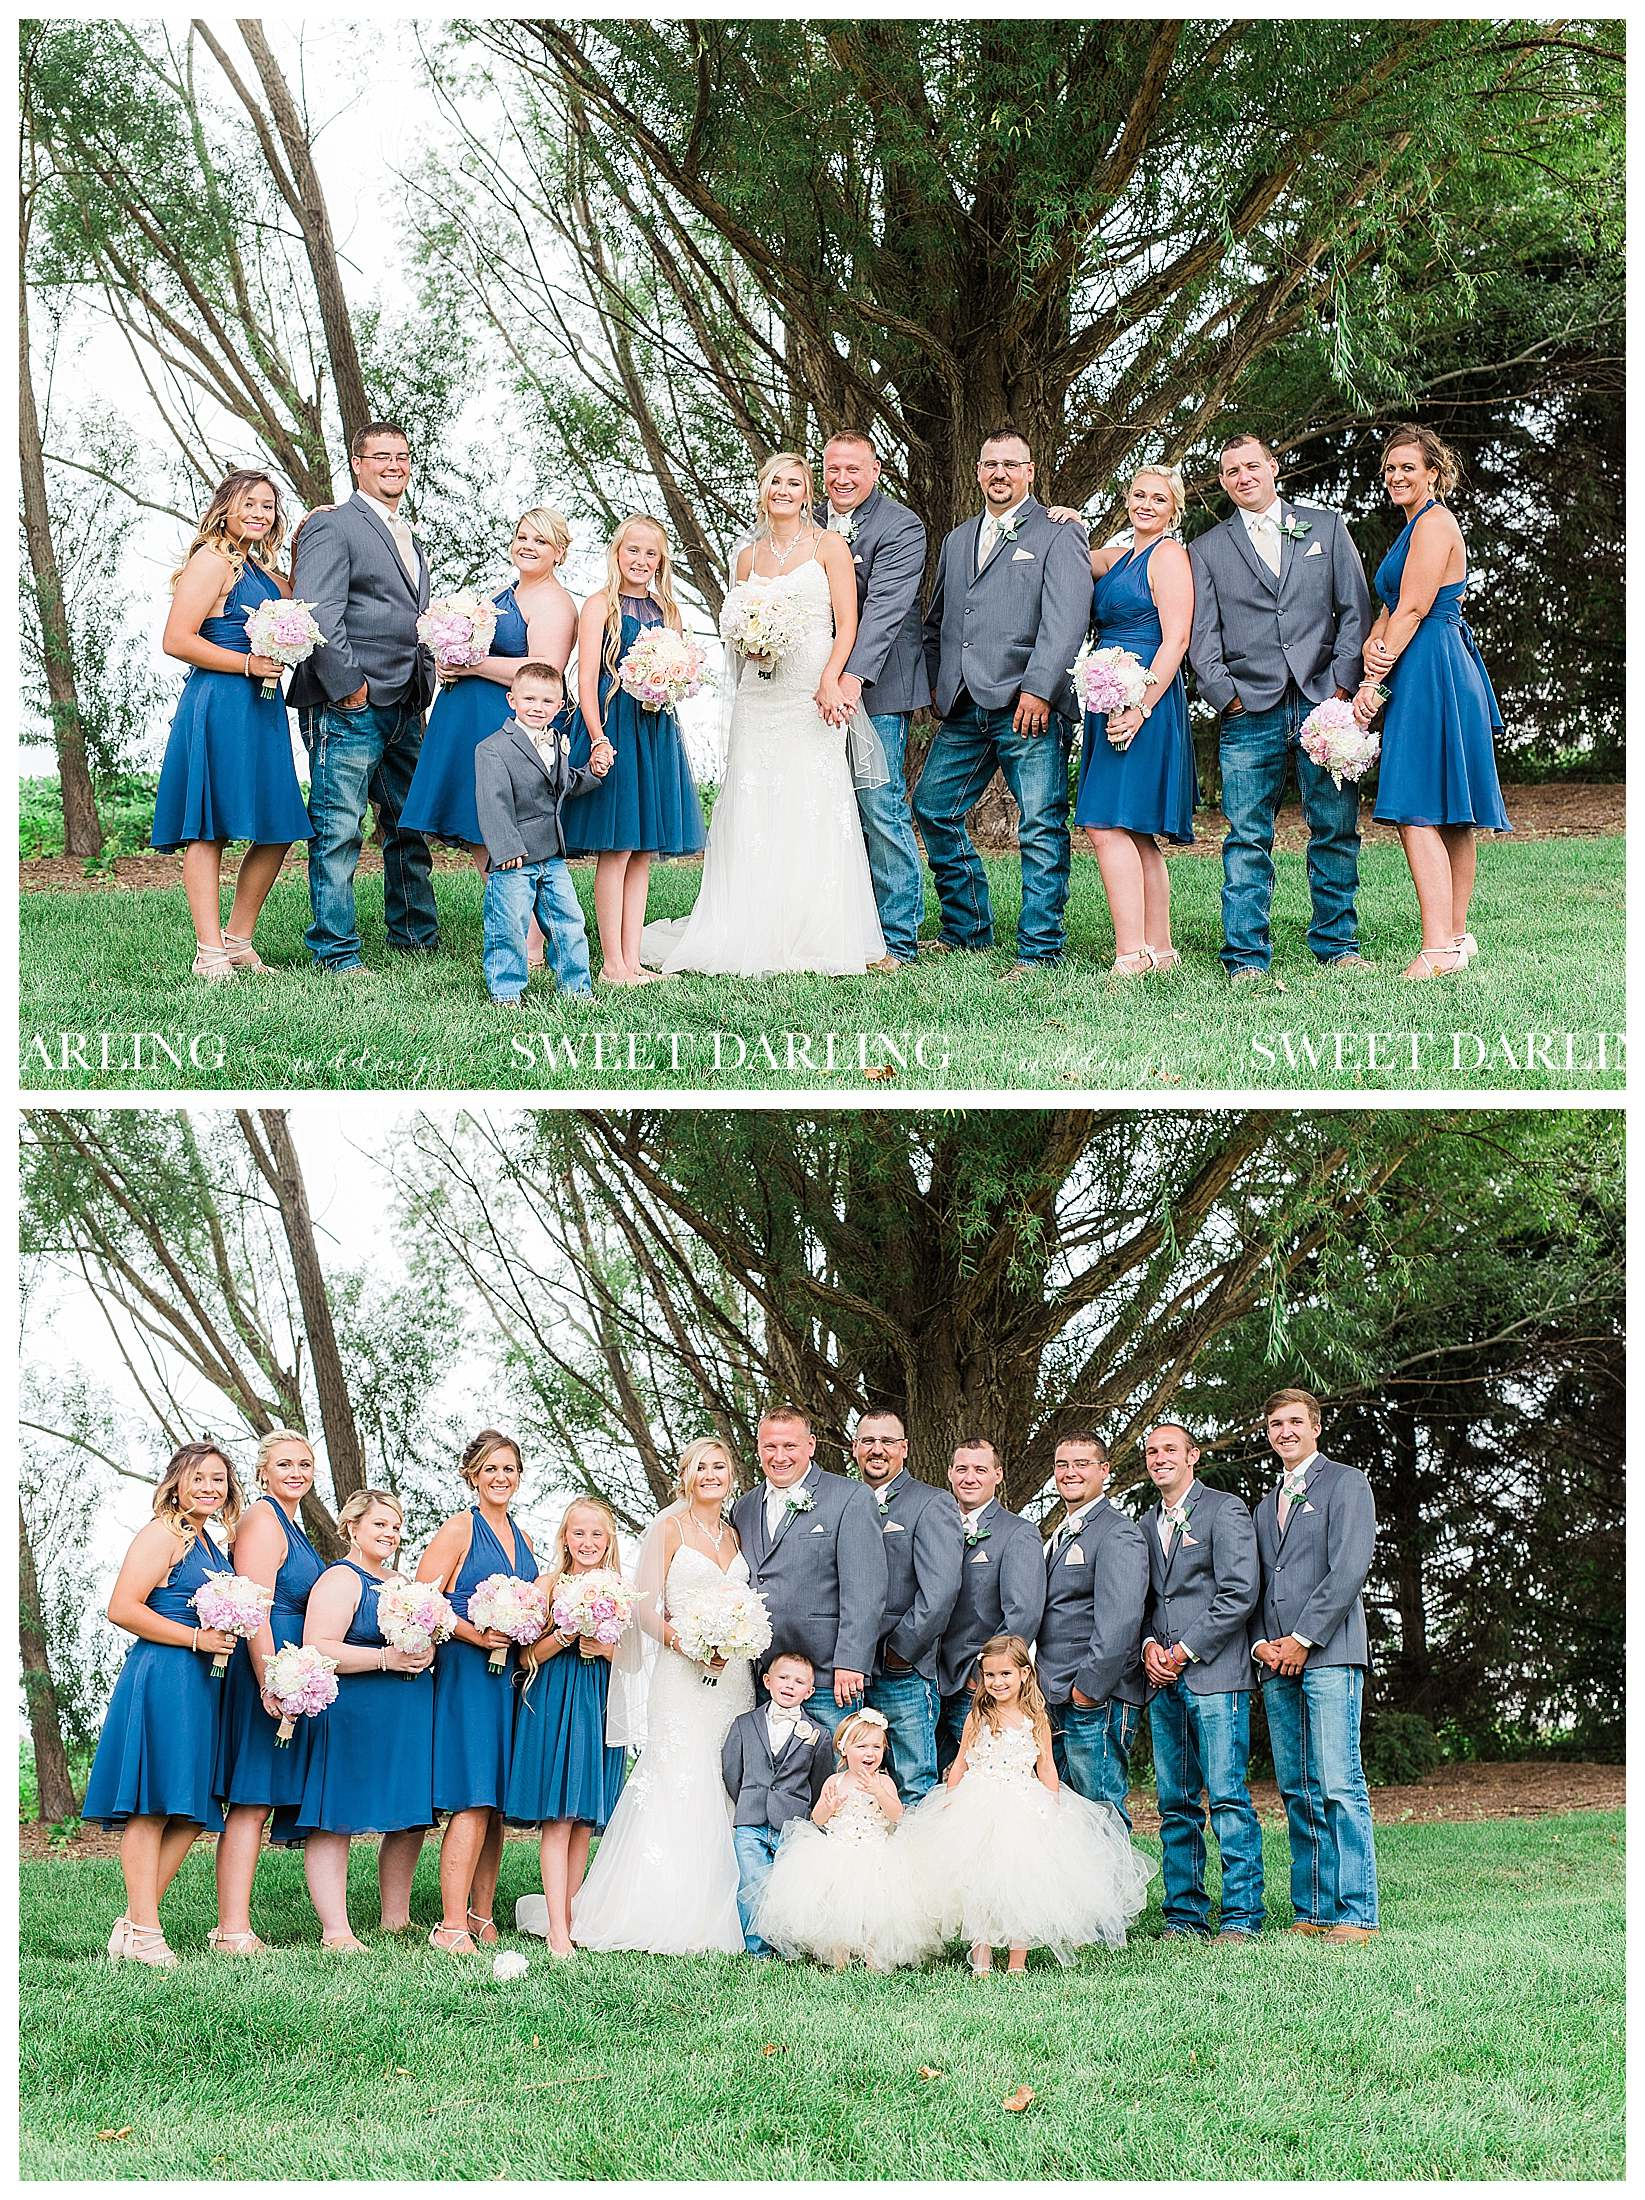 champaign-county-illinois-Pear-Tree-Estate-sweet-darling-weddings-photography_1541.jpg